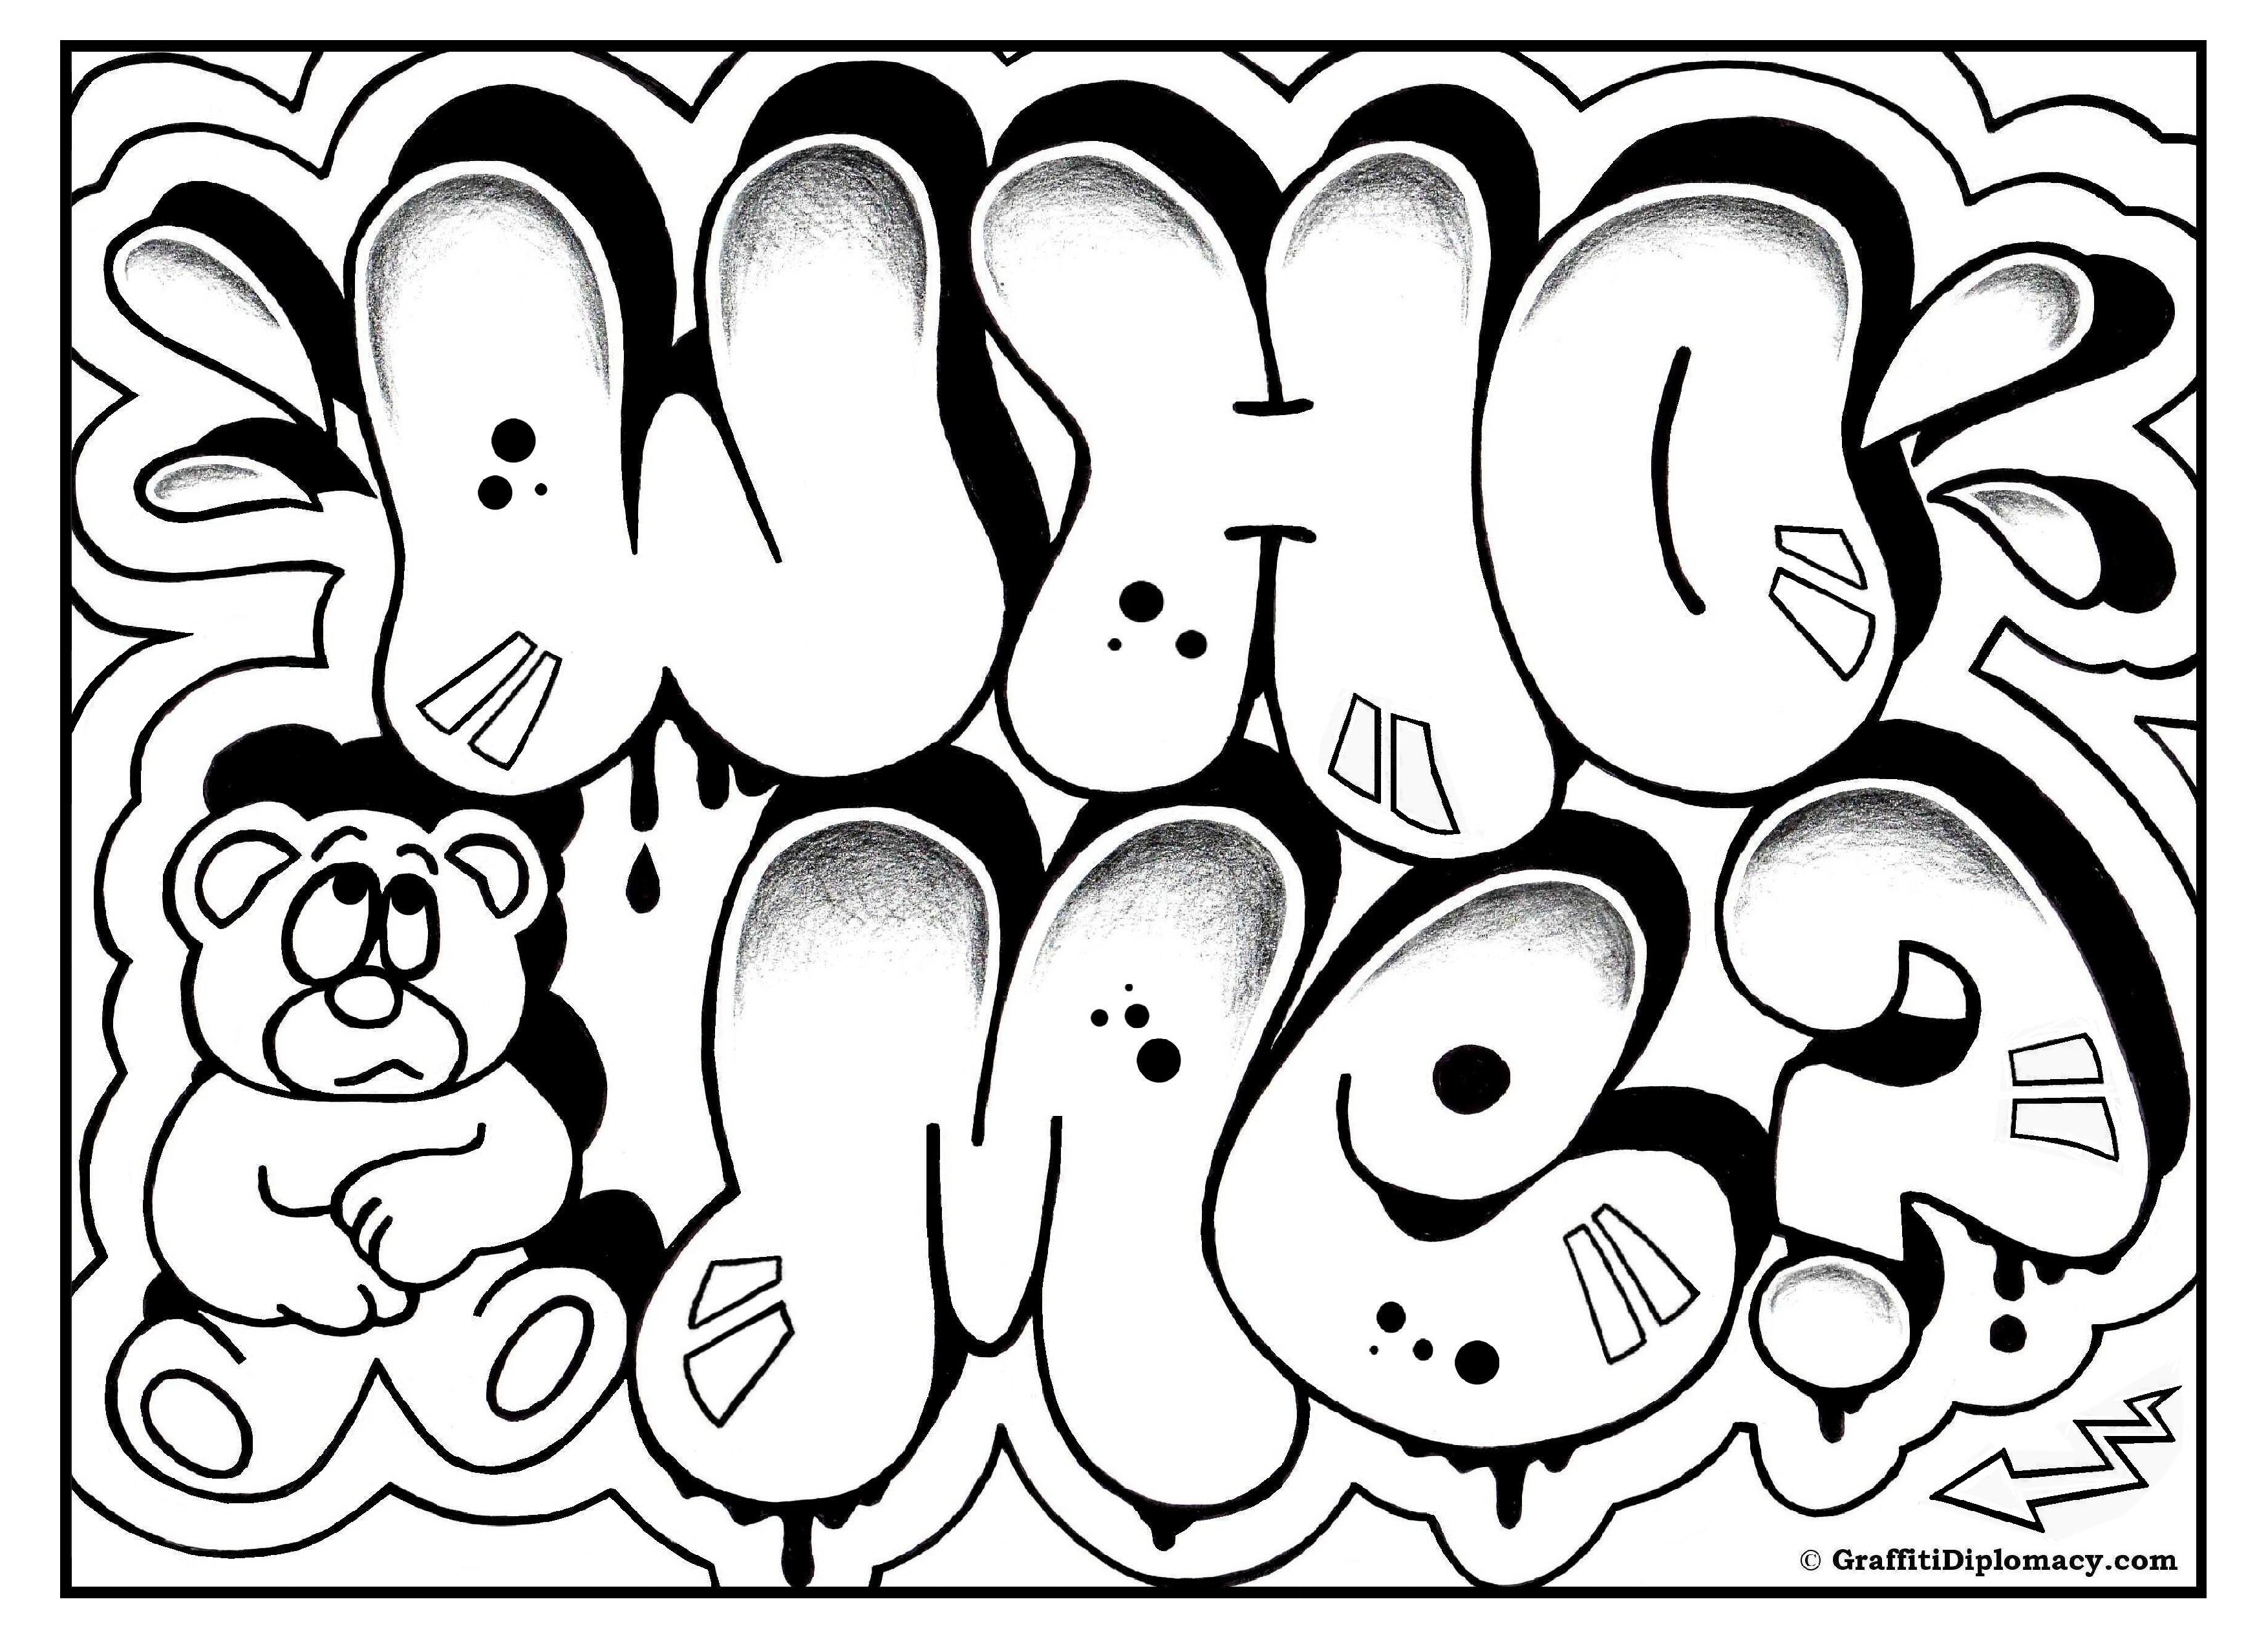 3508x2552 Graffiti Letters Easy To Draw Easy Graffiti Letters To Draw